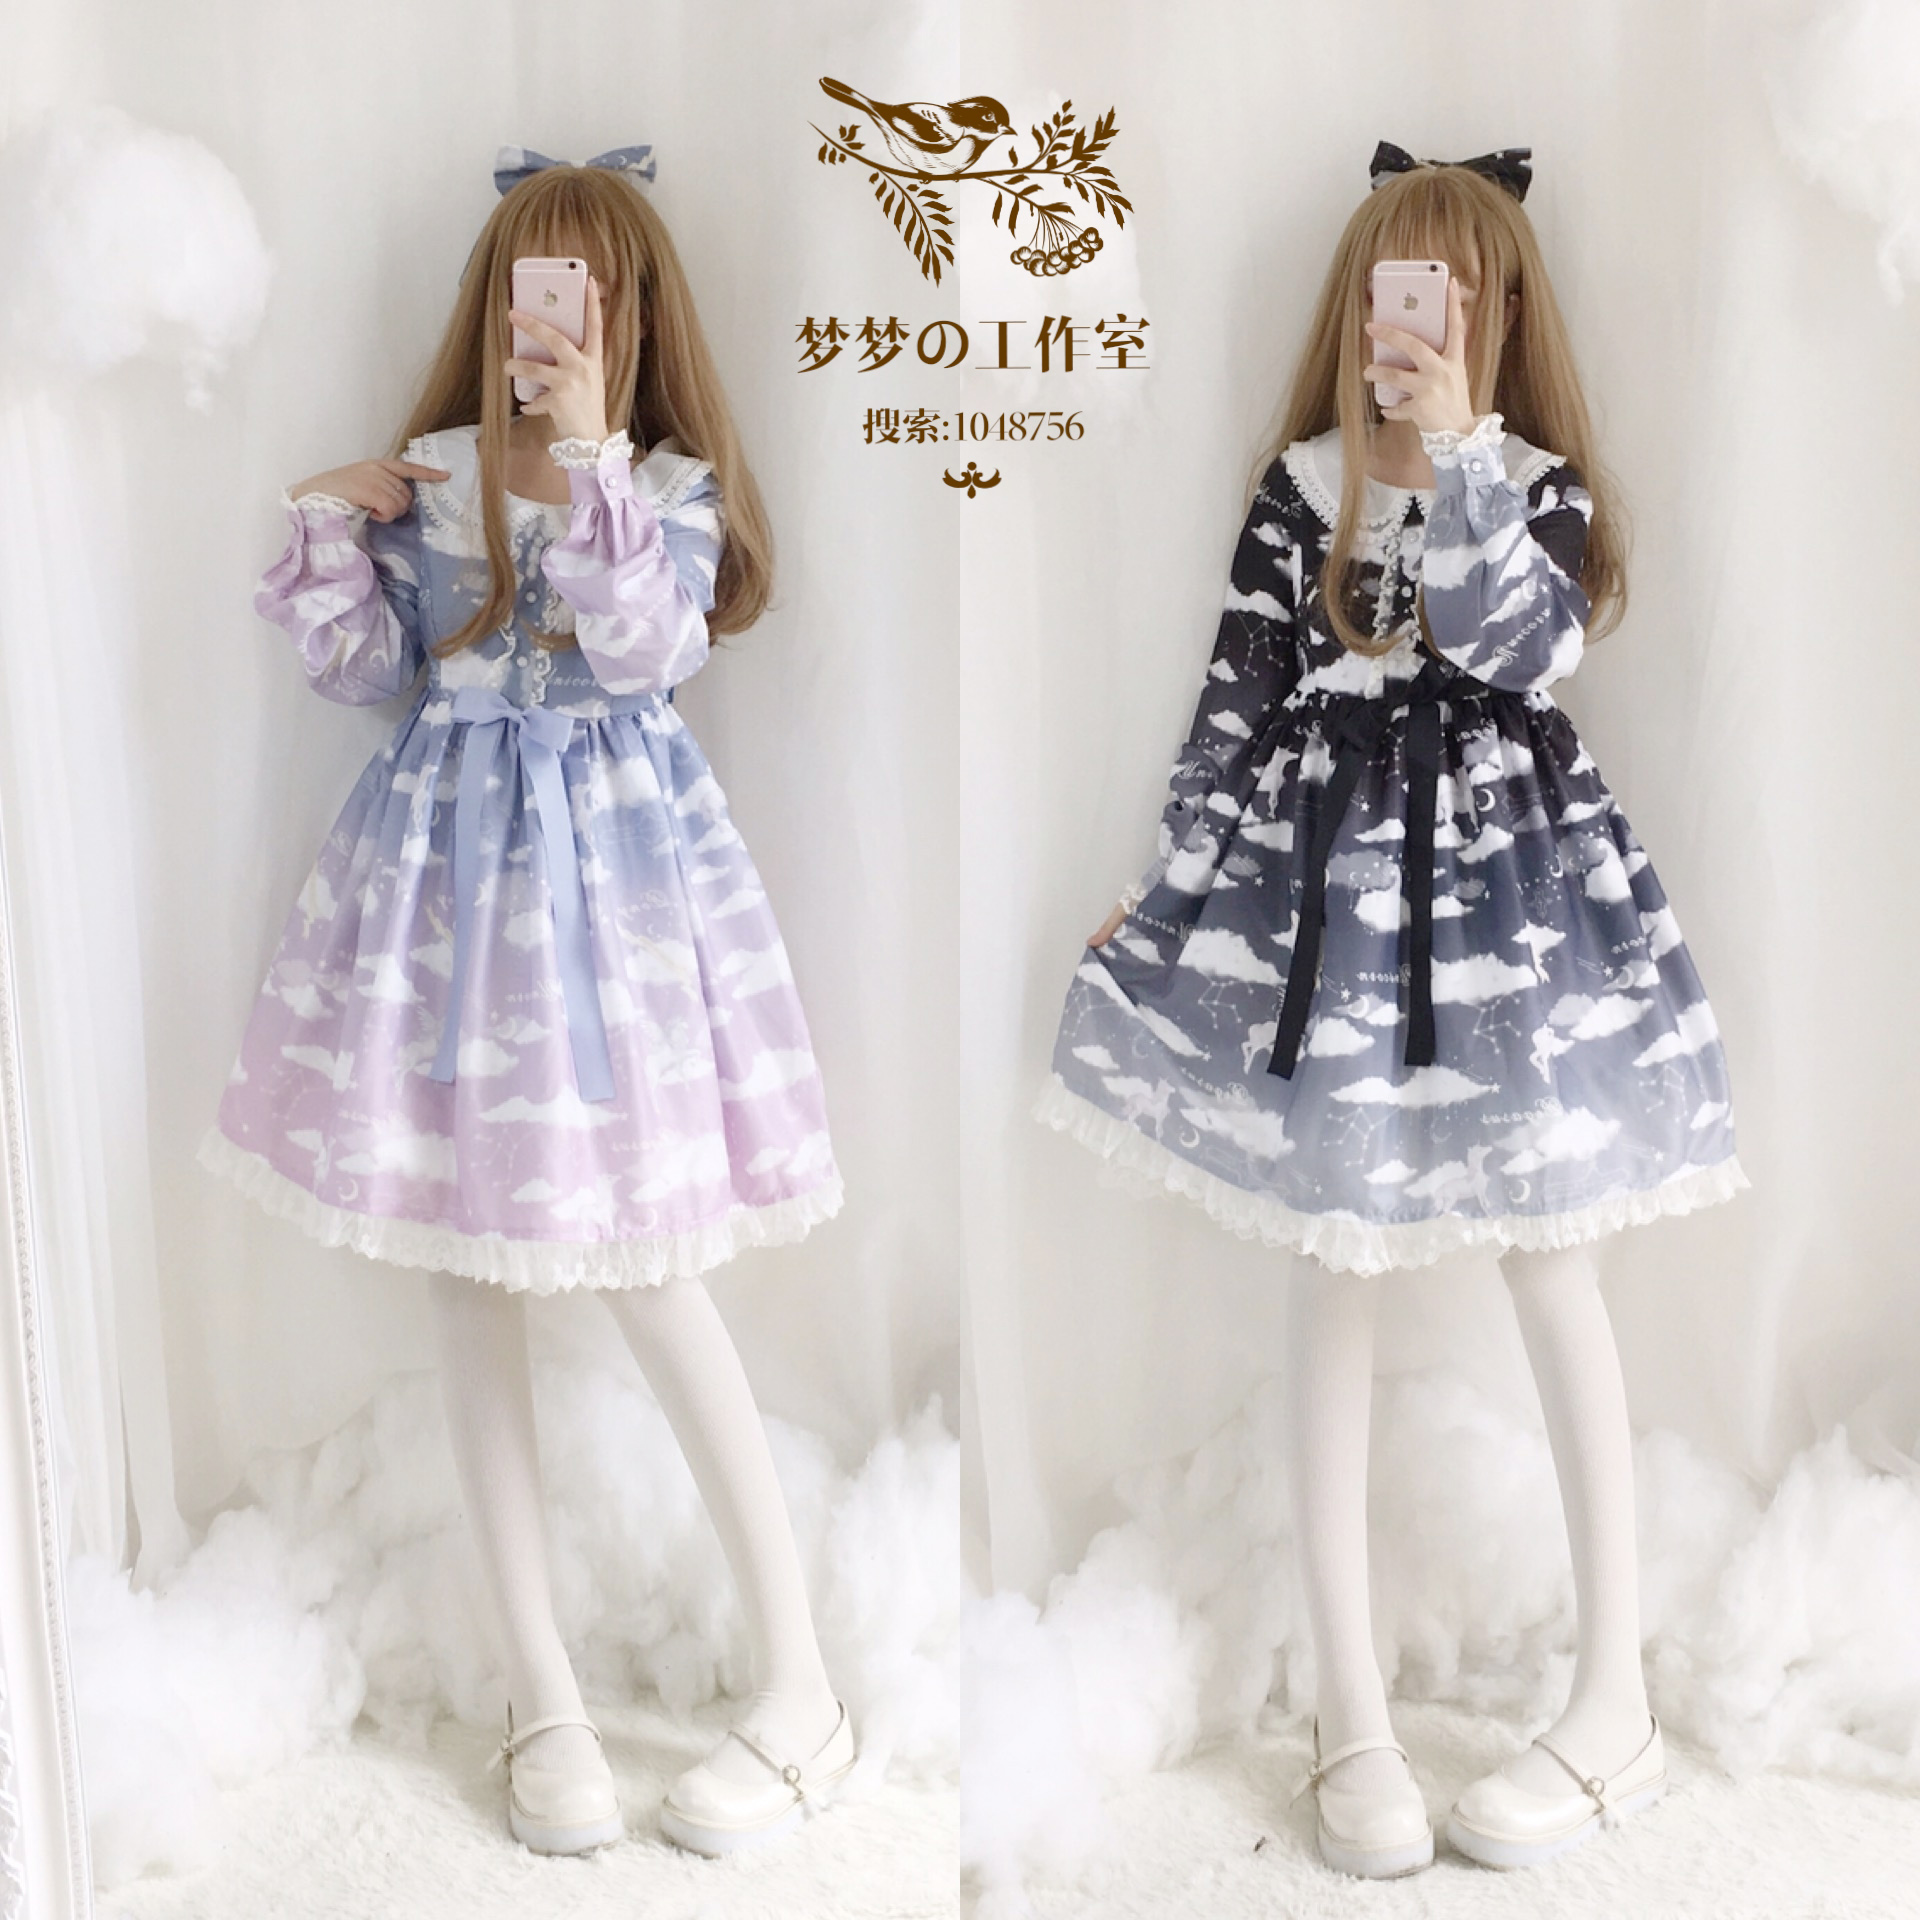 Vadim Real Sale Plus Size Dress Free Shipping 2019 New Original Authentic Lolita Dress Song Of The Sea Of Clouds Who Unicorn Op image